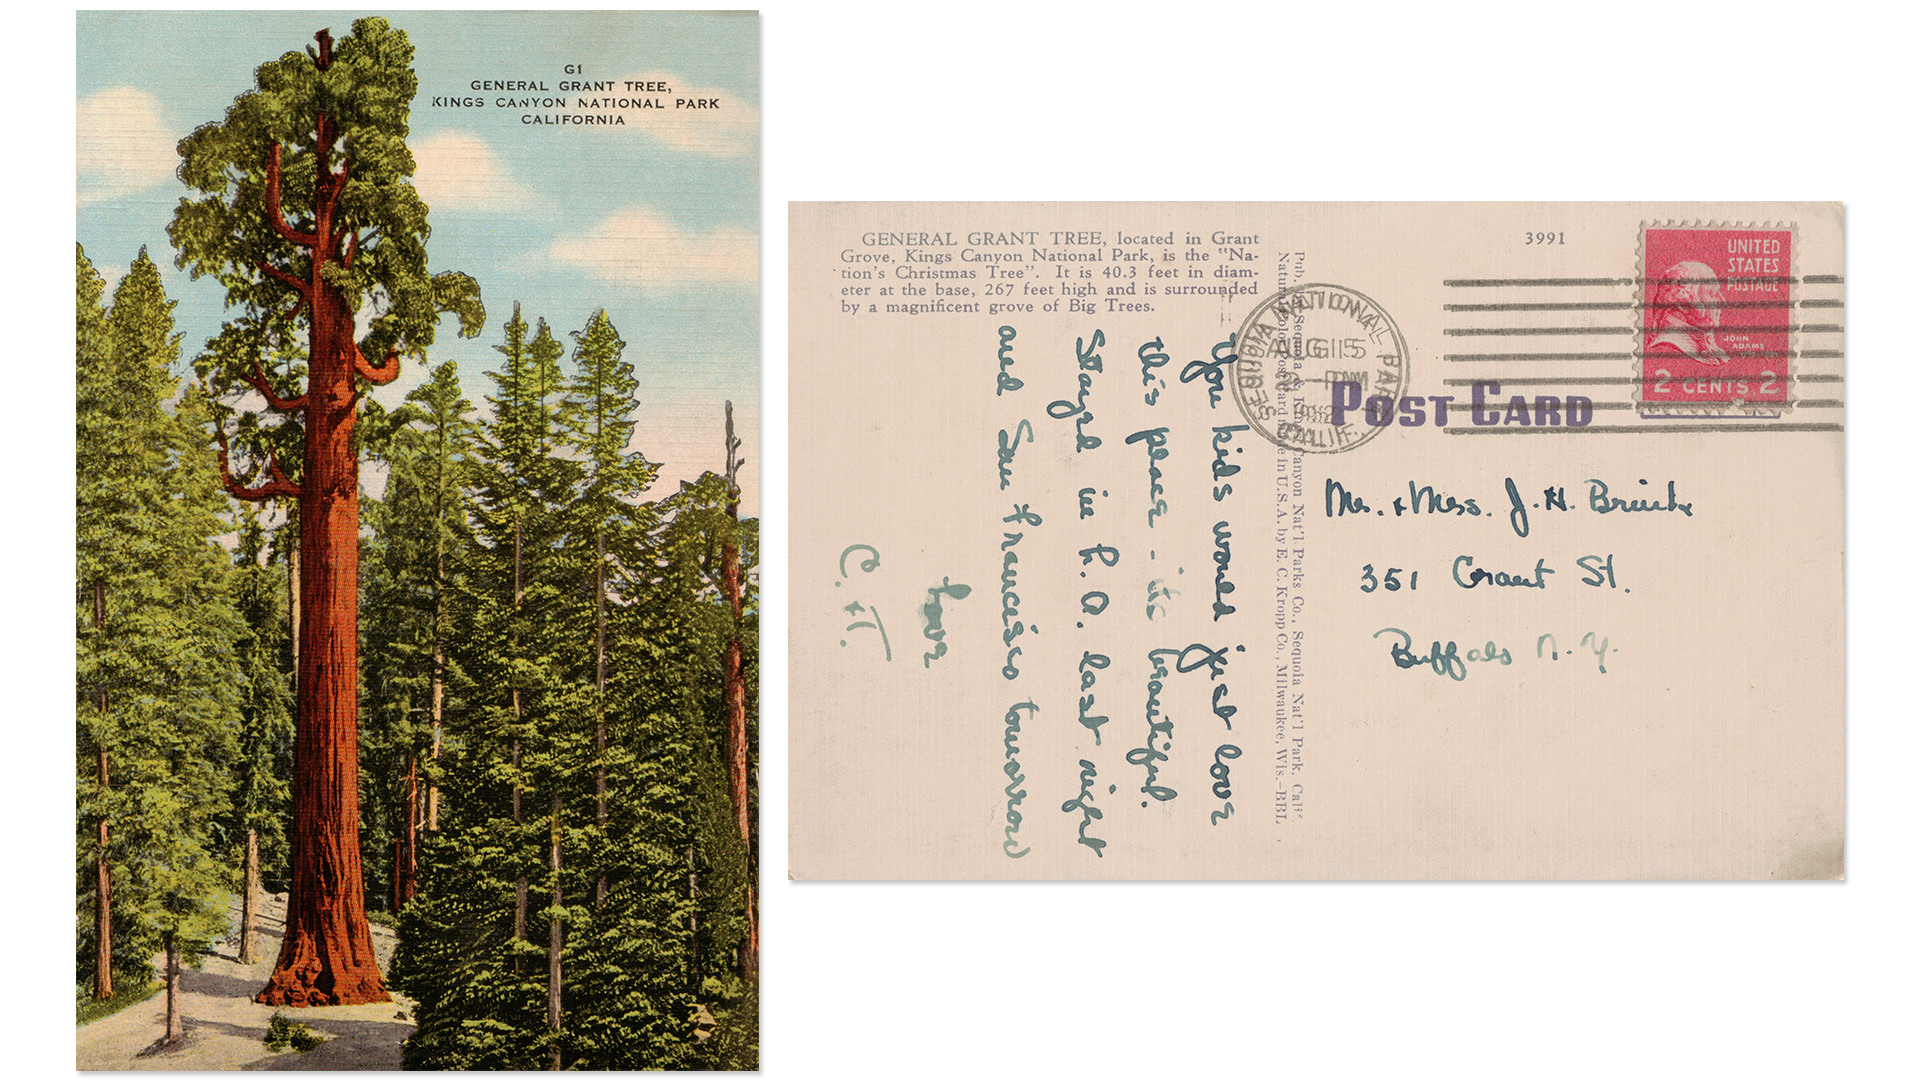 General Grant Tree Kings Canyon National Park Antique Postcard